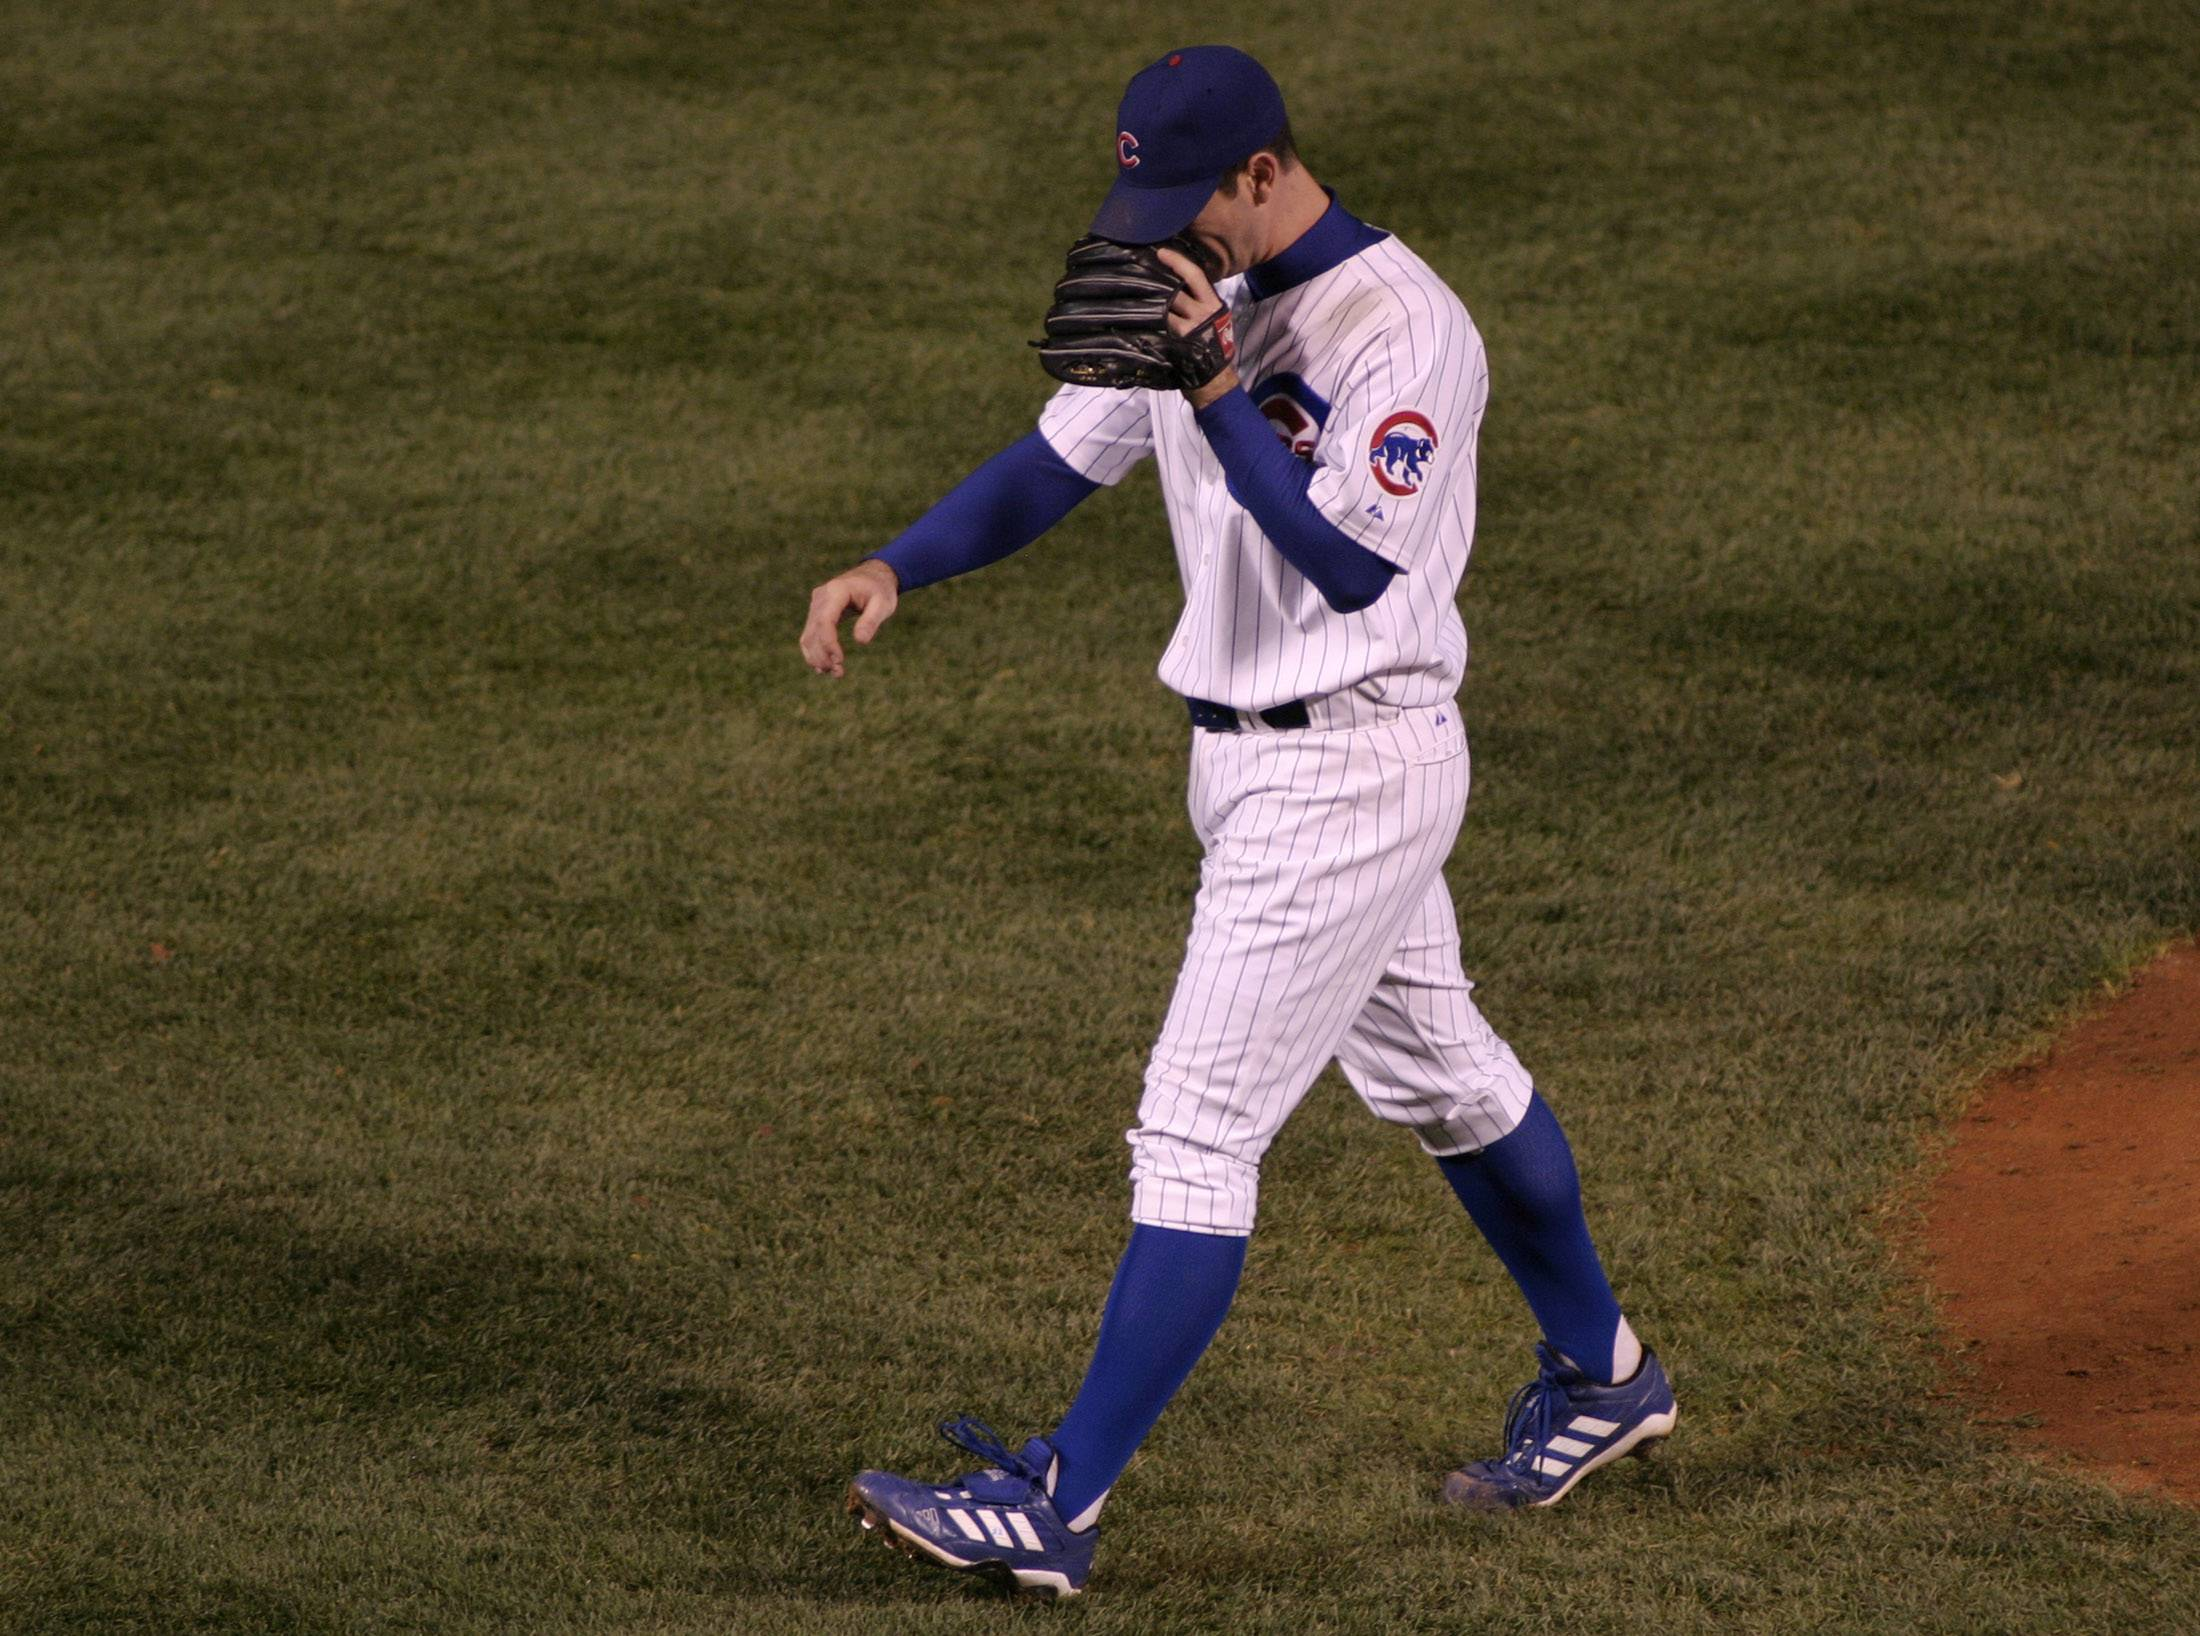 After perhaps the most bizarre and heartbreaking inning in Cubs' history, pitcher Mark Prior talks to himself as he walks off the mound, about to be the losing pitcher of pivotal Game 6 of the National League championship series in 2003.